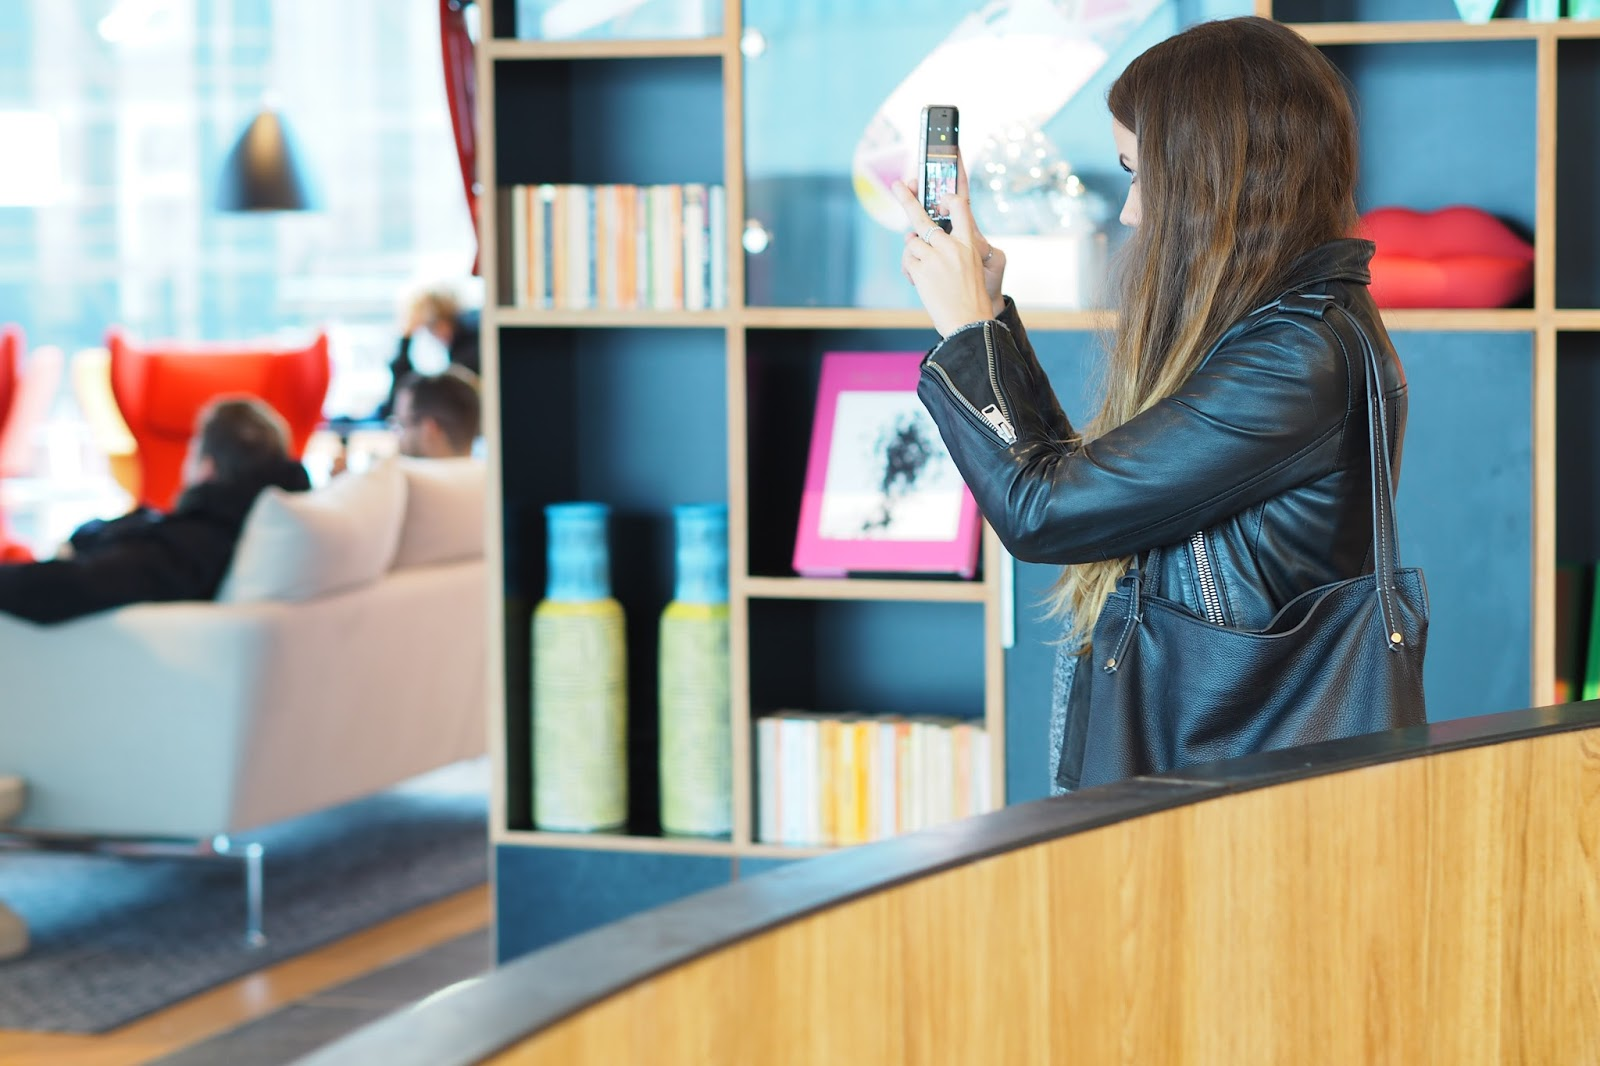 citizenm shoreditch living room